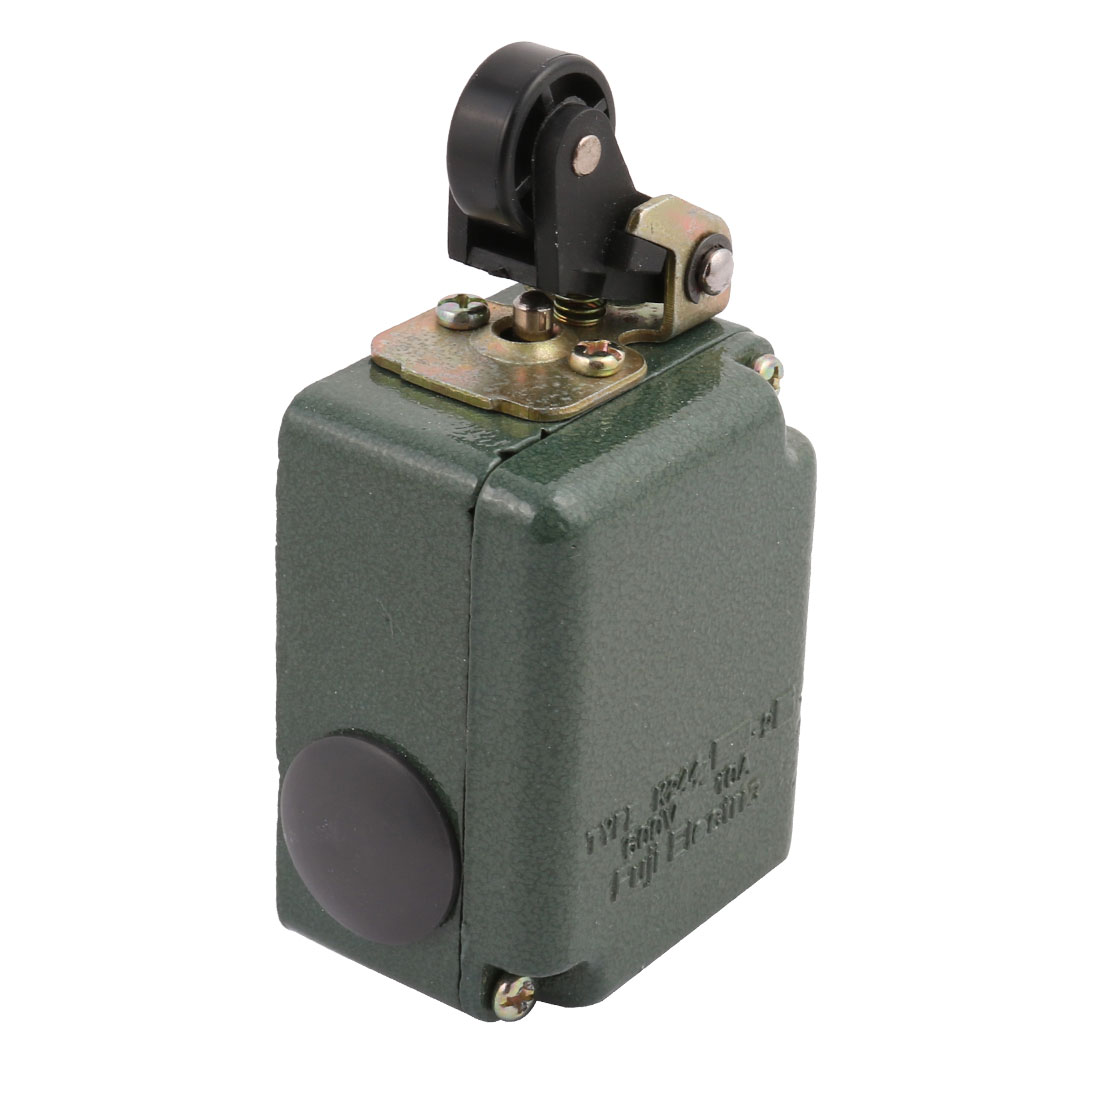 Momentary Action Side Rotary Roller Lever Actuator Limit Switch AC 600V 10A